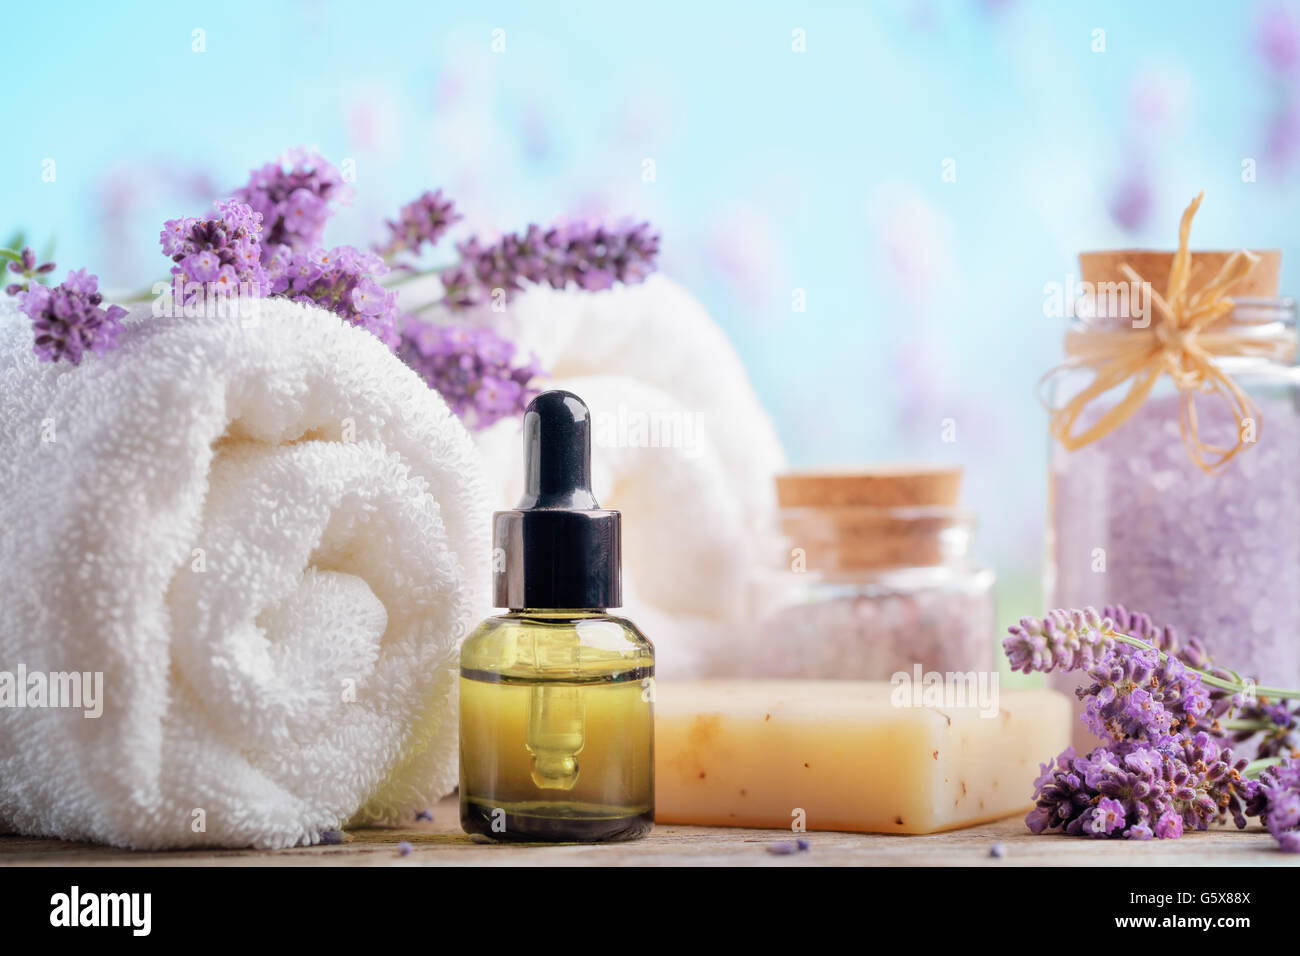 Essential oil, seasalt,towels and handmade soap - Stock Image